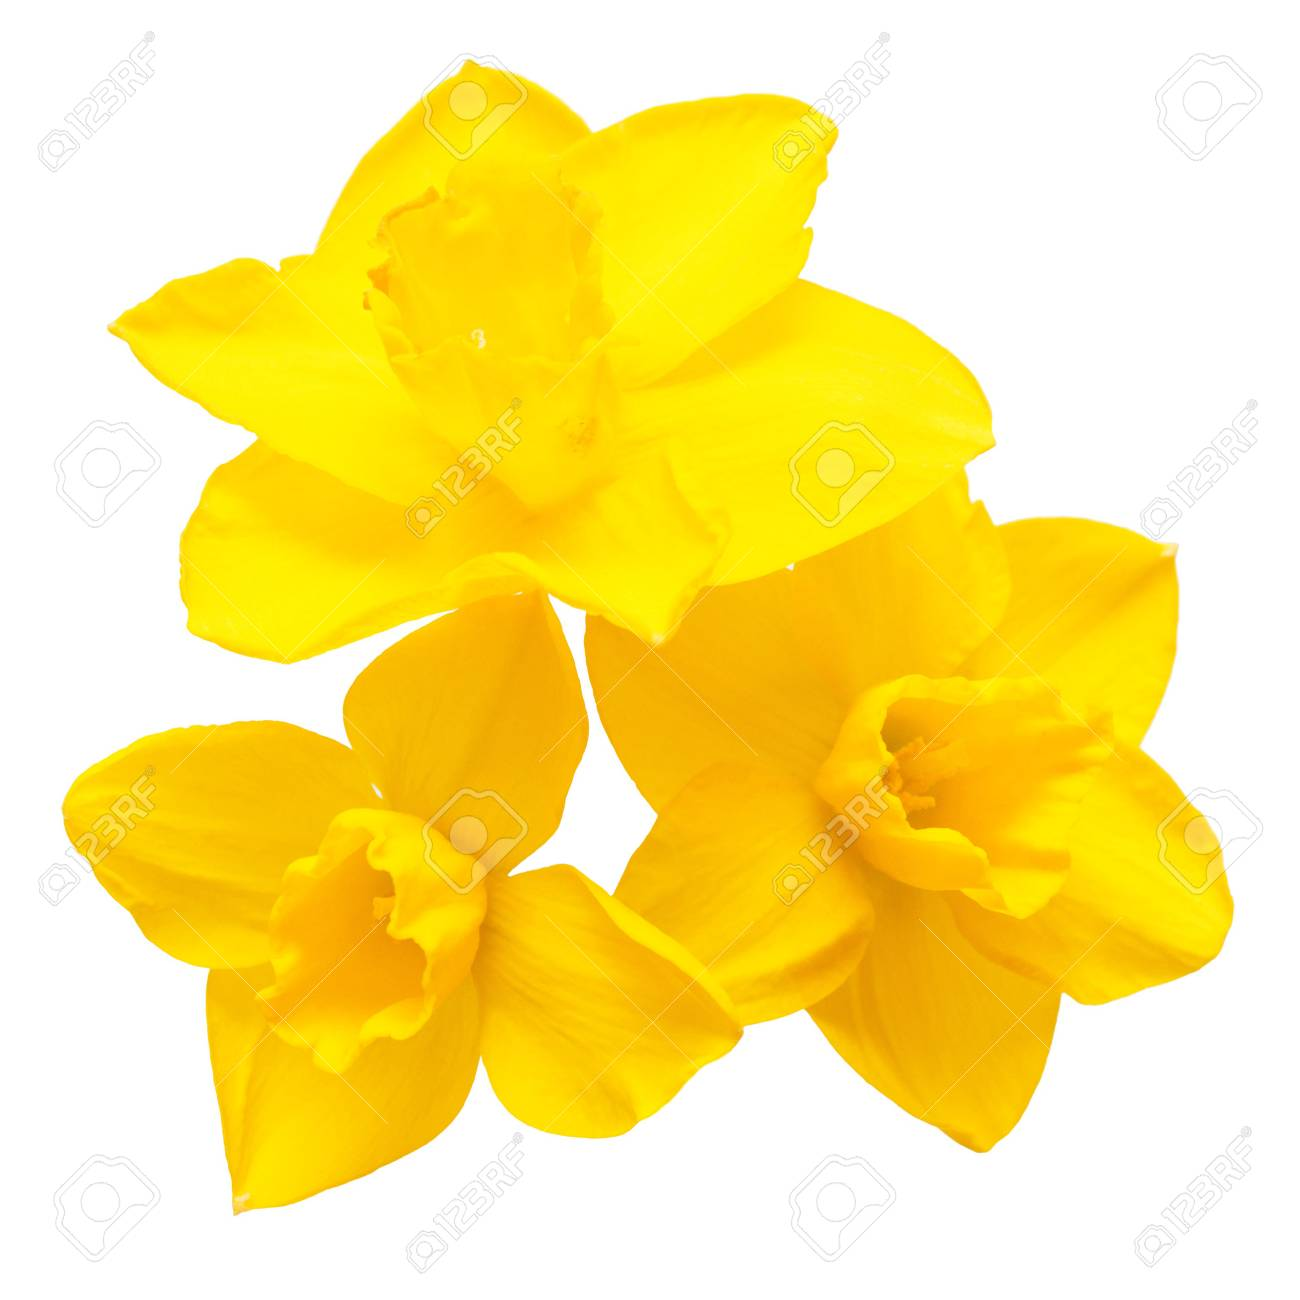 Bouquet of yellow daffodils flowers isolated on white background. Flat lay, top view - 78399793